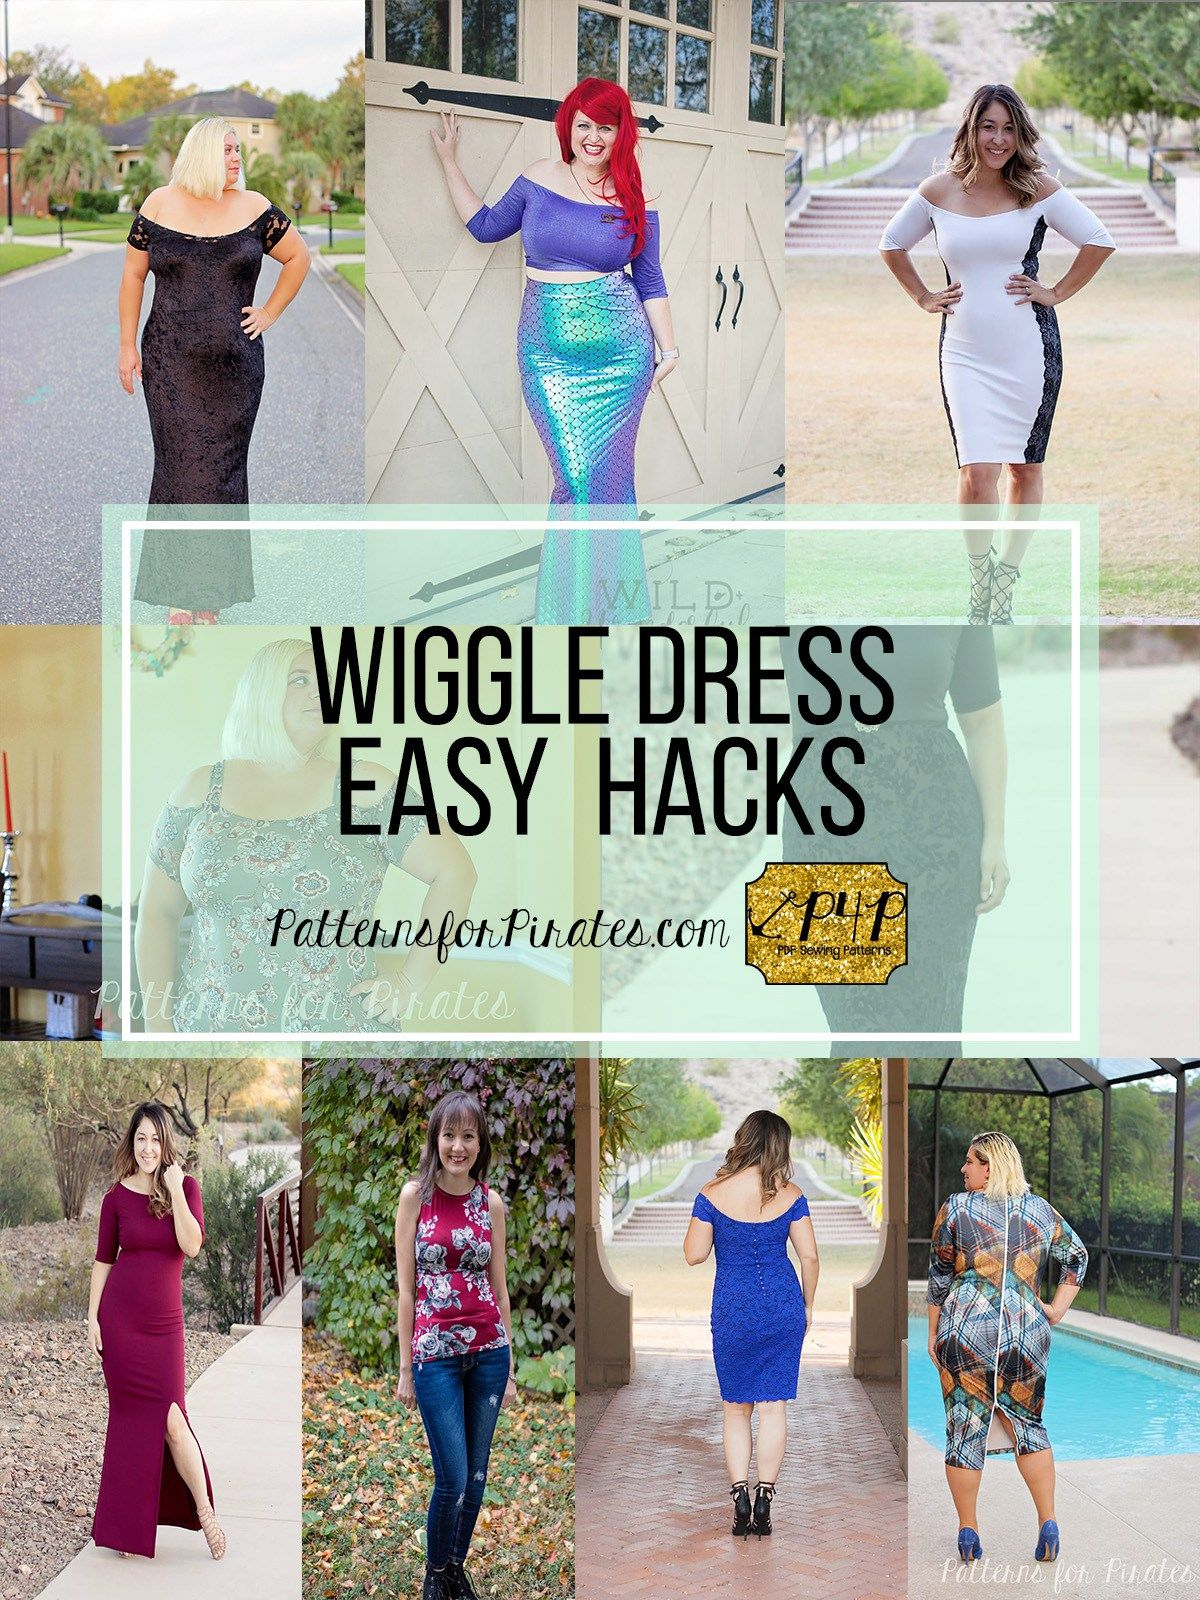 Wiggle Dress Easy Hacks Patterns For Pirates Wiggle Dress